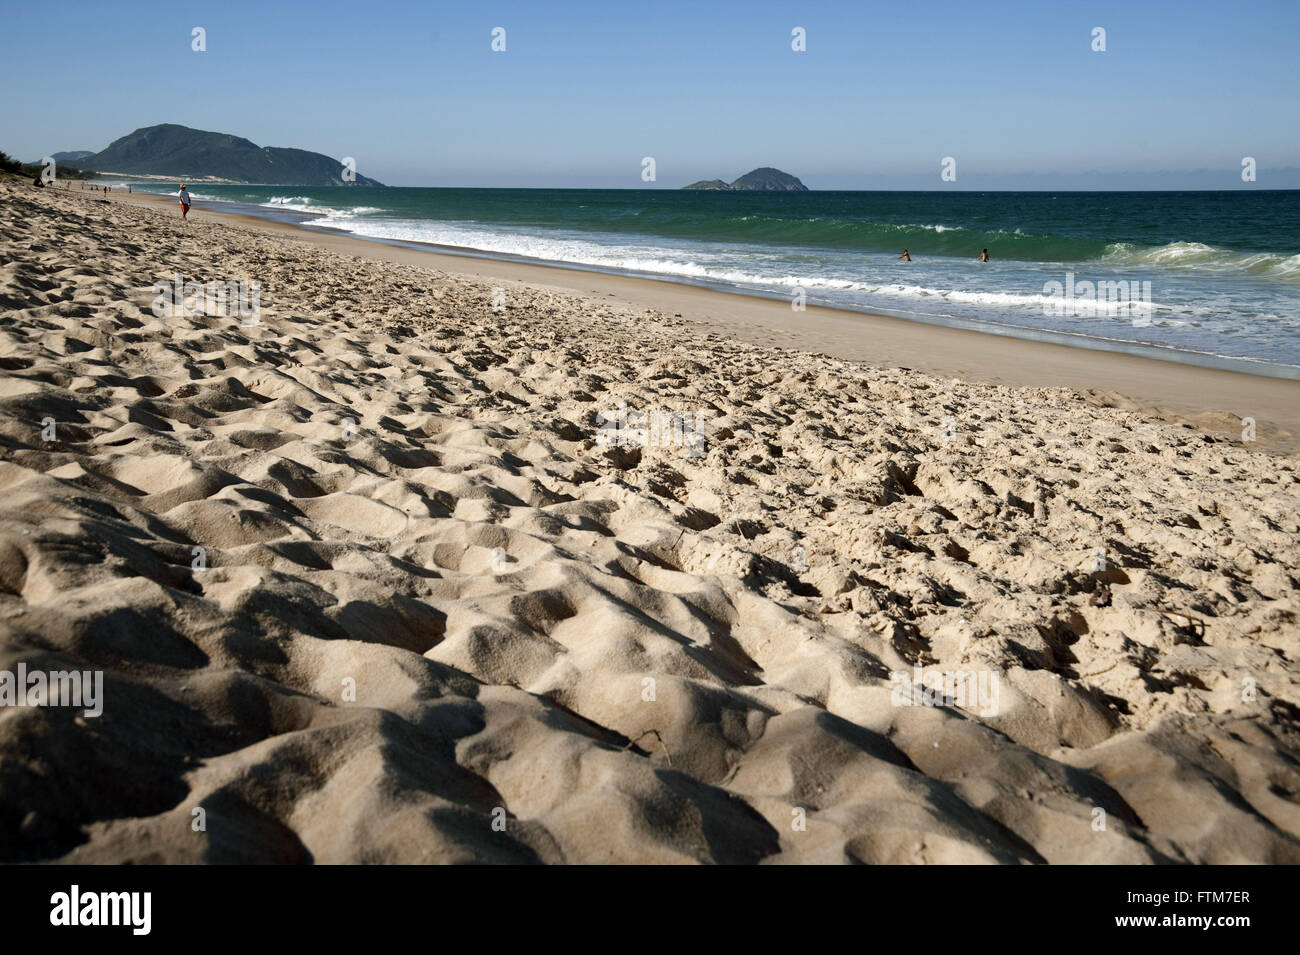 Mocambique beach in the coastal city of Florianopolis - Stock Image